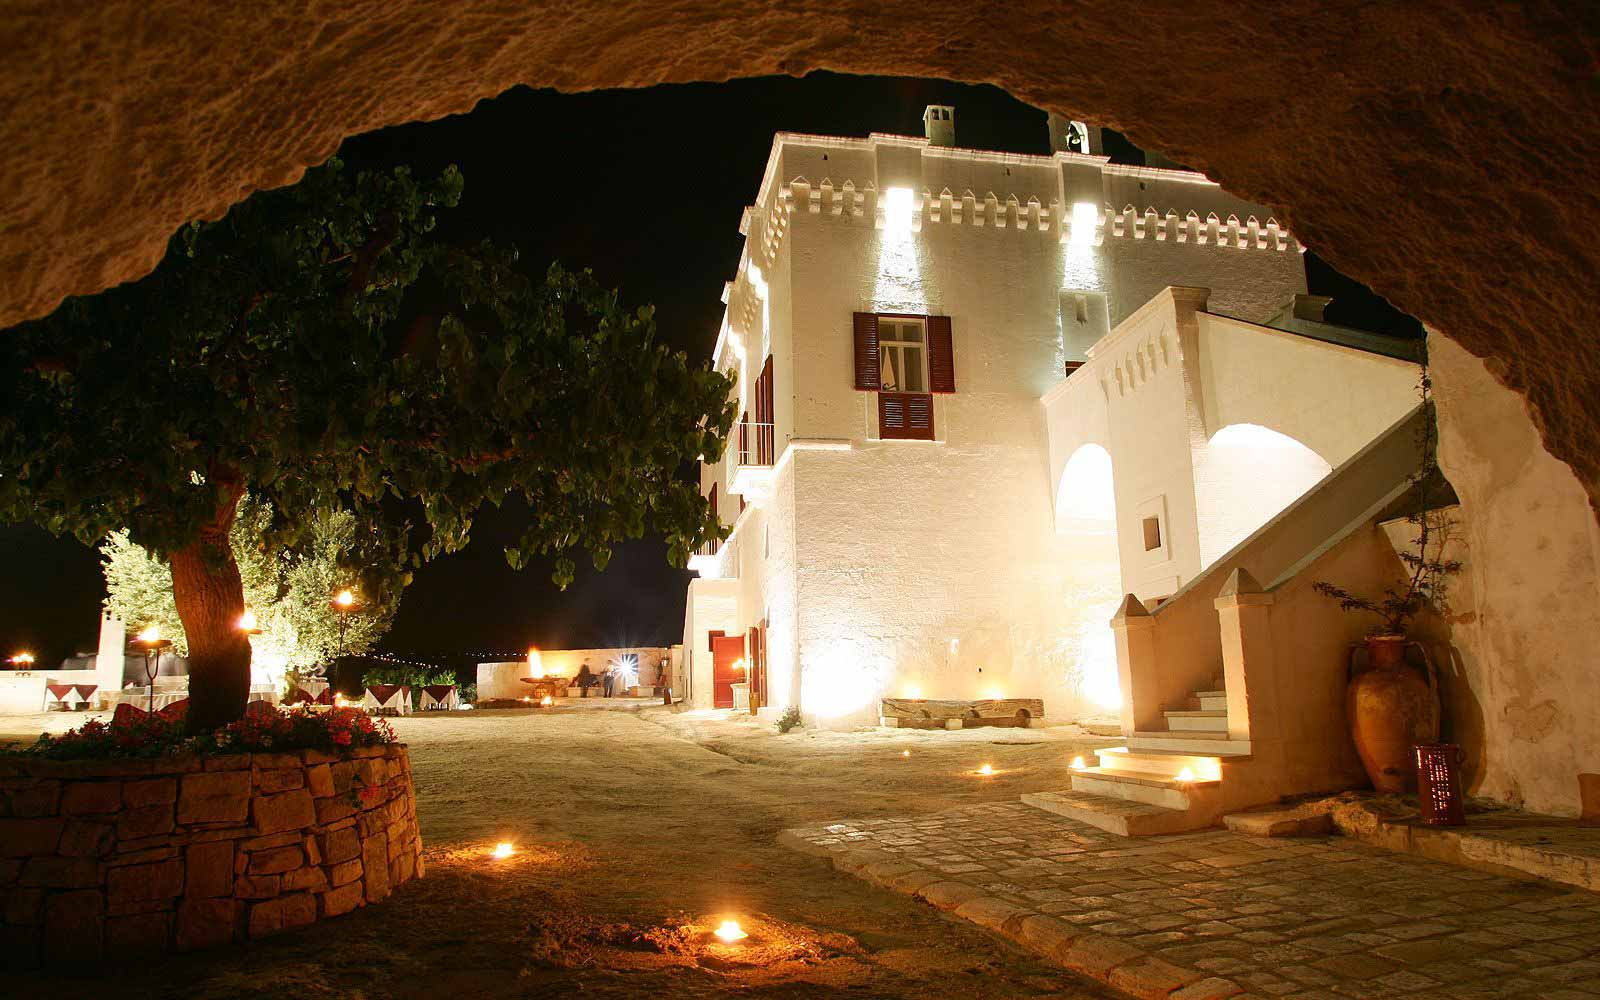 Masseria Torre Coccaro at night